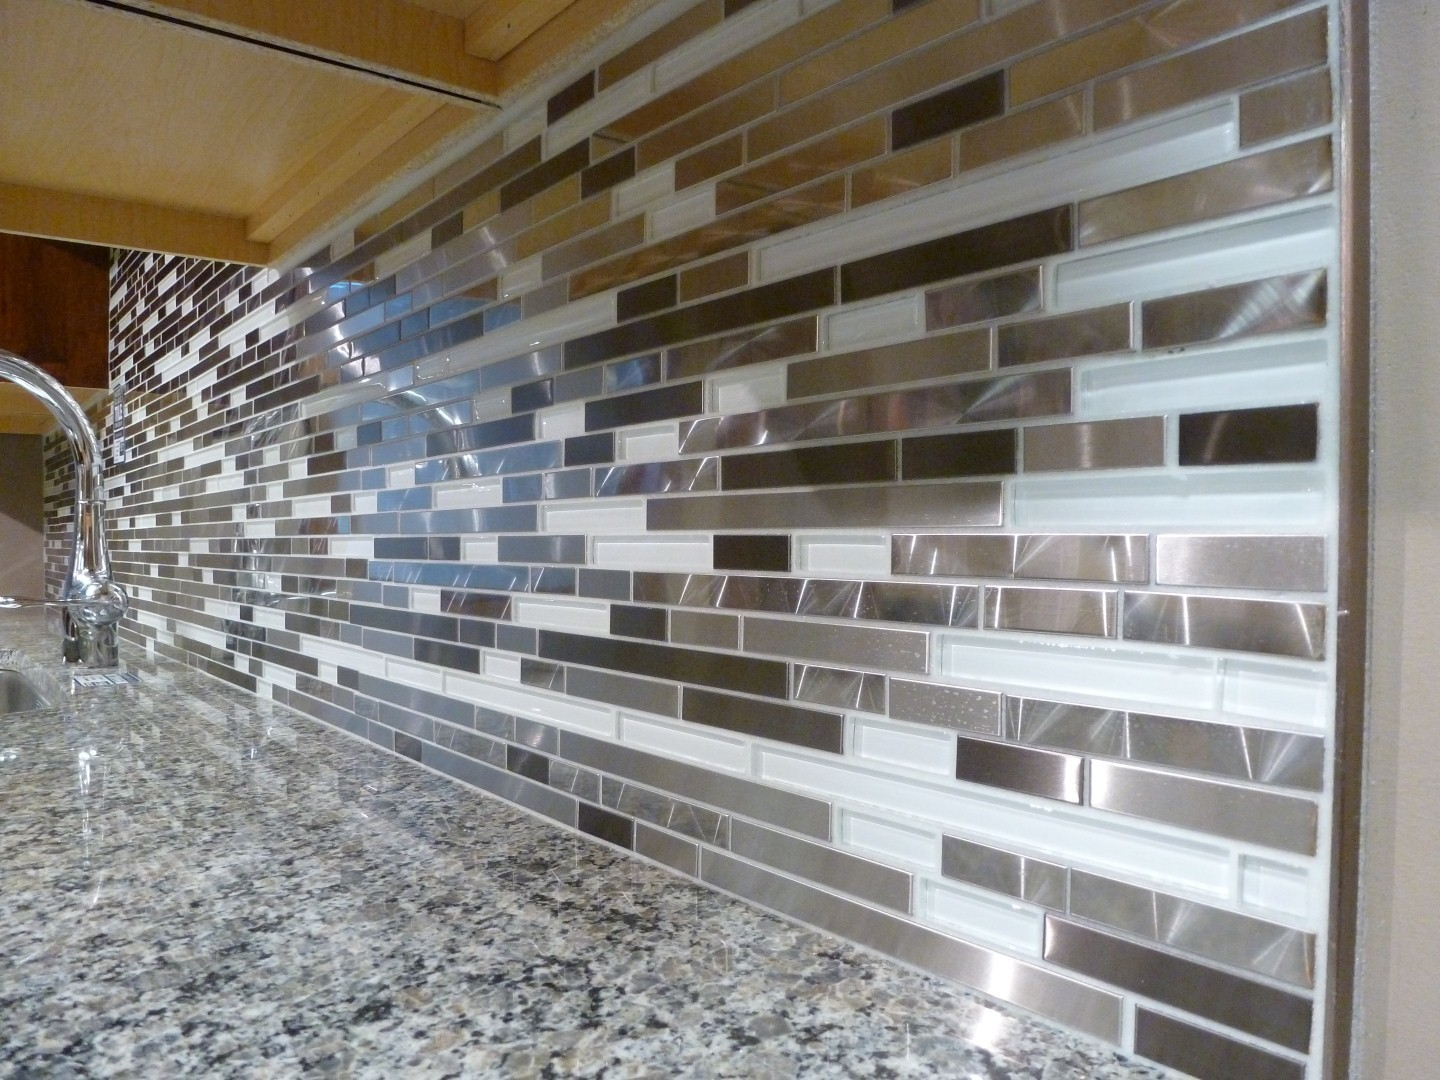 Install mosaic tile backsplash mosaics tile curved all sides fit together Backsplash mosaic tile